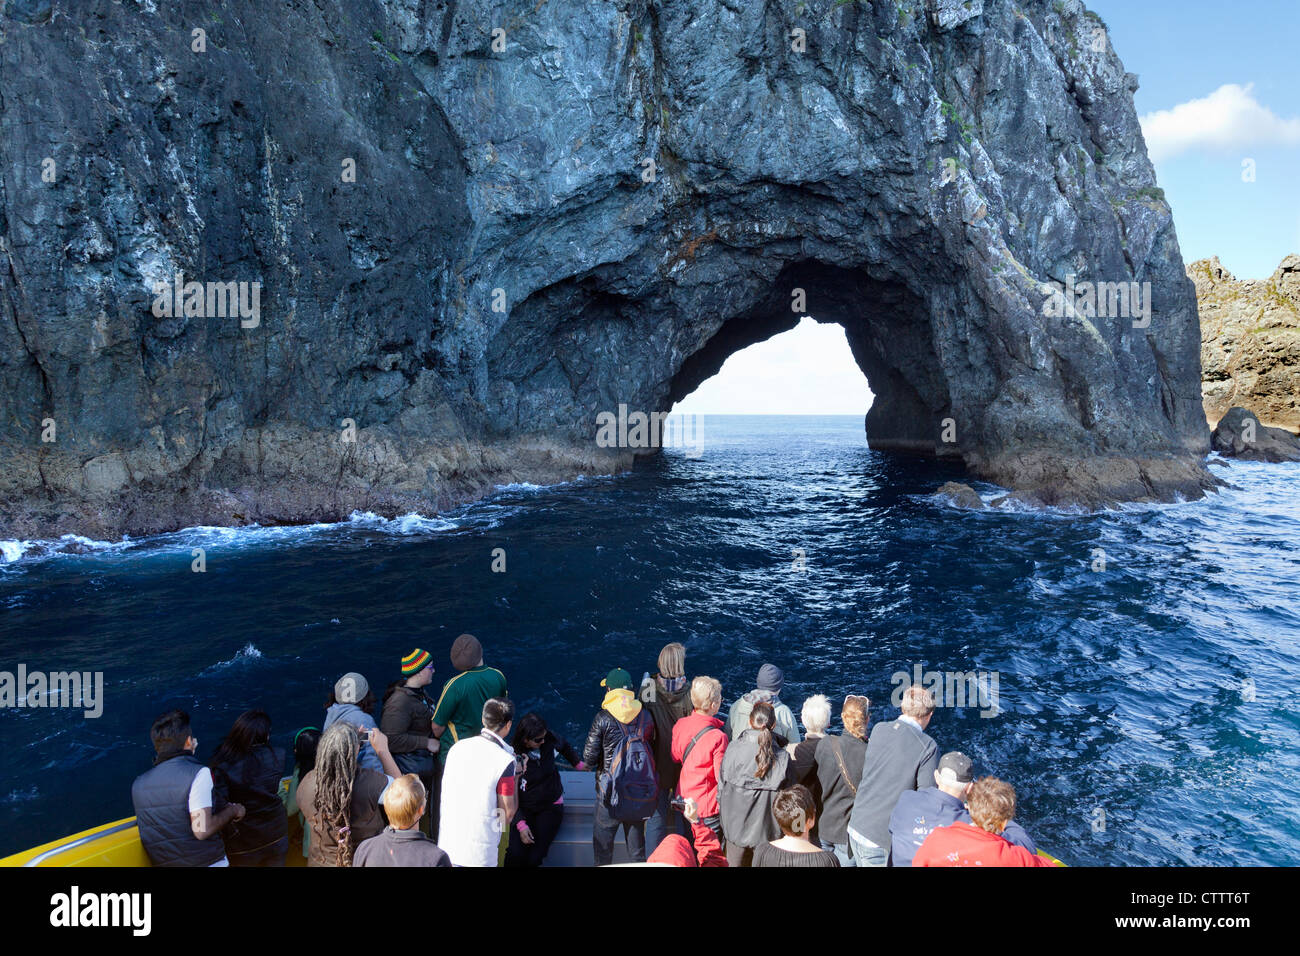 Cruising the Bay of Islands, New Zealand - photographing the Hole in the Rock - Stock Image